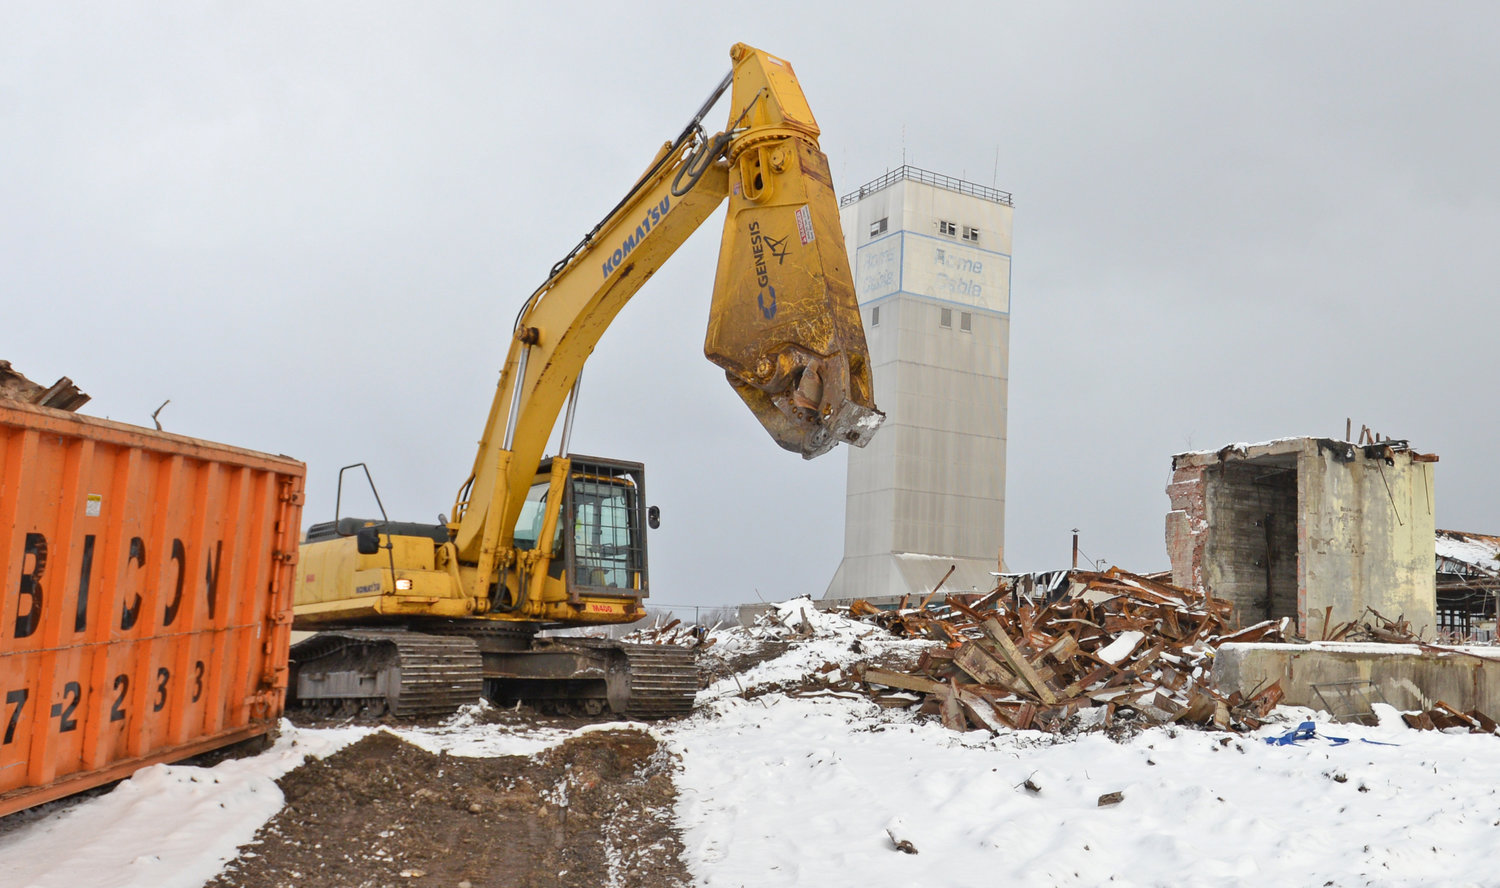 PREPARING FOR THE FUTURE — An excavator picking through metal at the former Rome Cable site on Jan. 8, 2020. The site is being cleared and cleaned for redevelopment.